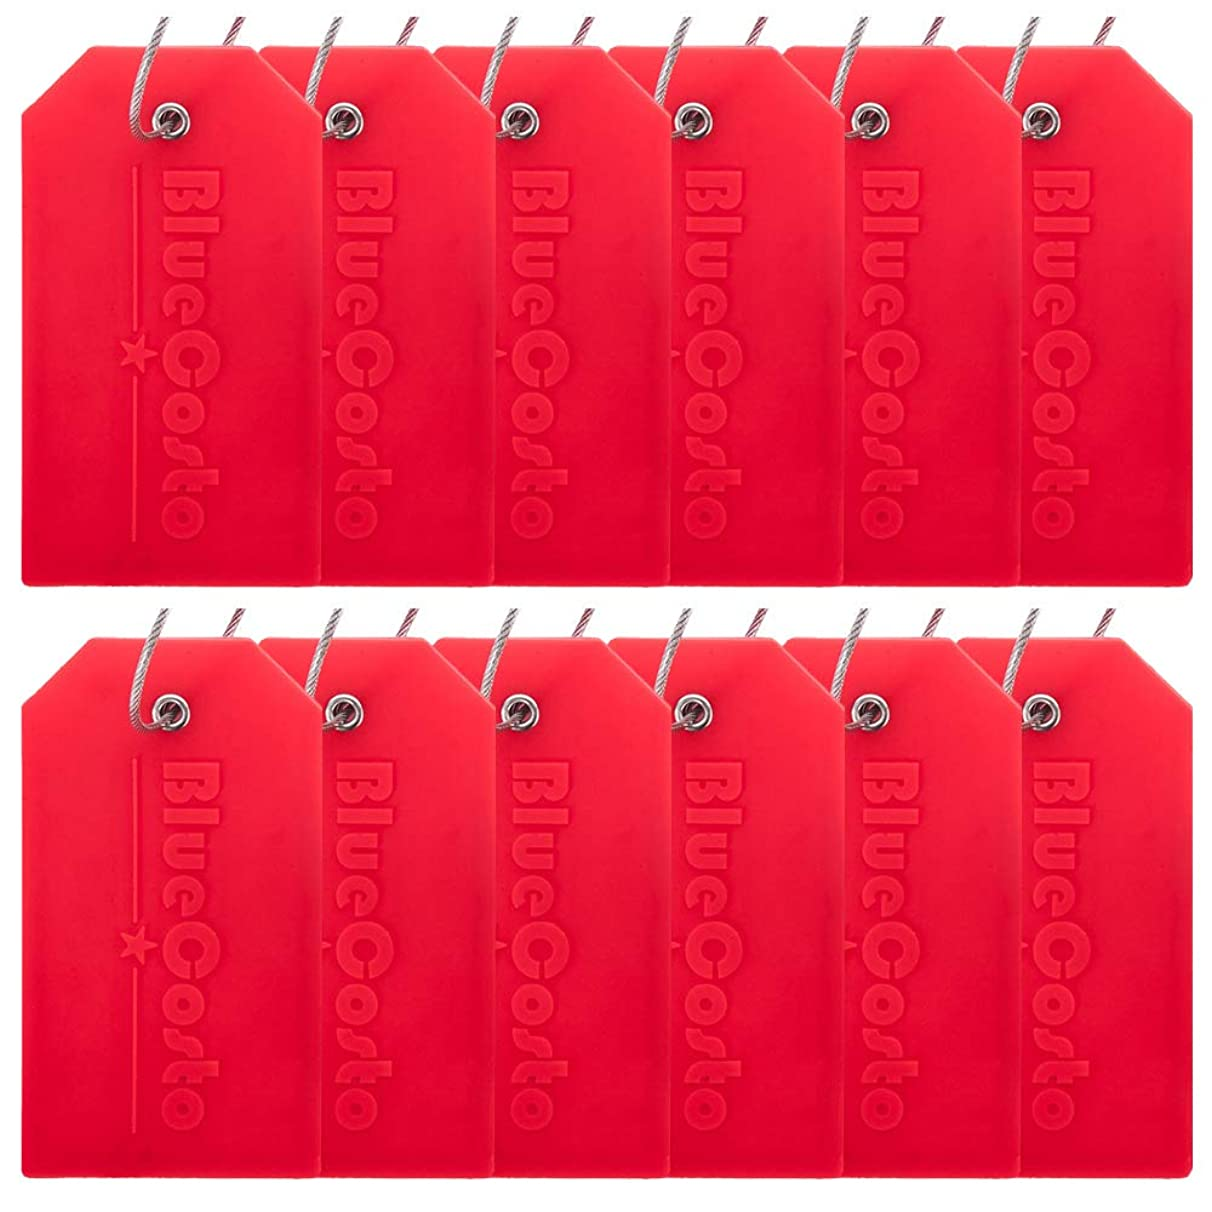 BlueCosto 6/12 Pack Luggage Tags Suitcase Tag Travel Bag Labels w/Privacy Cover